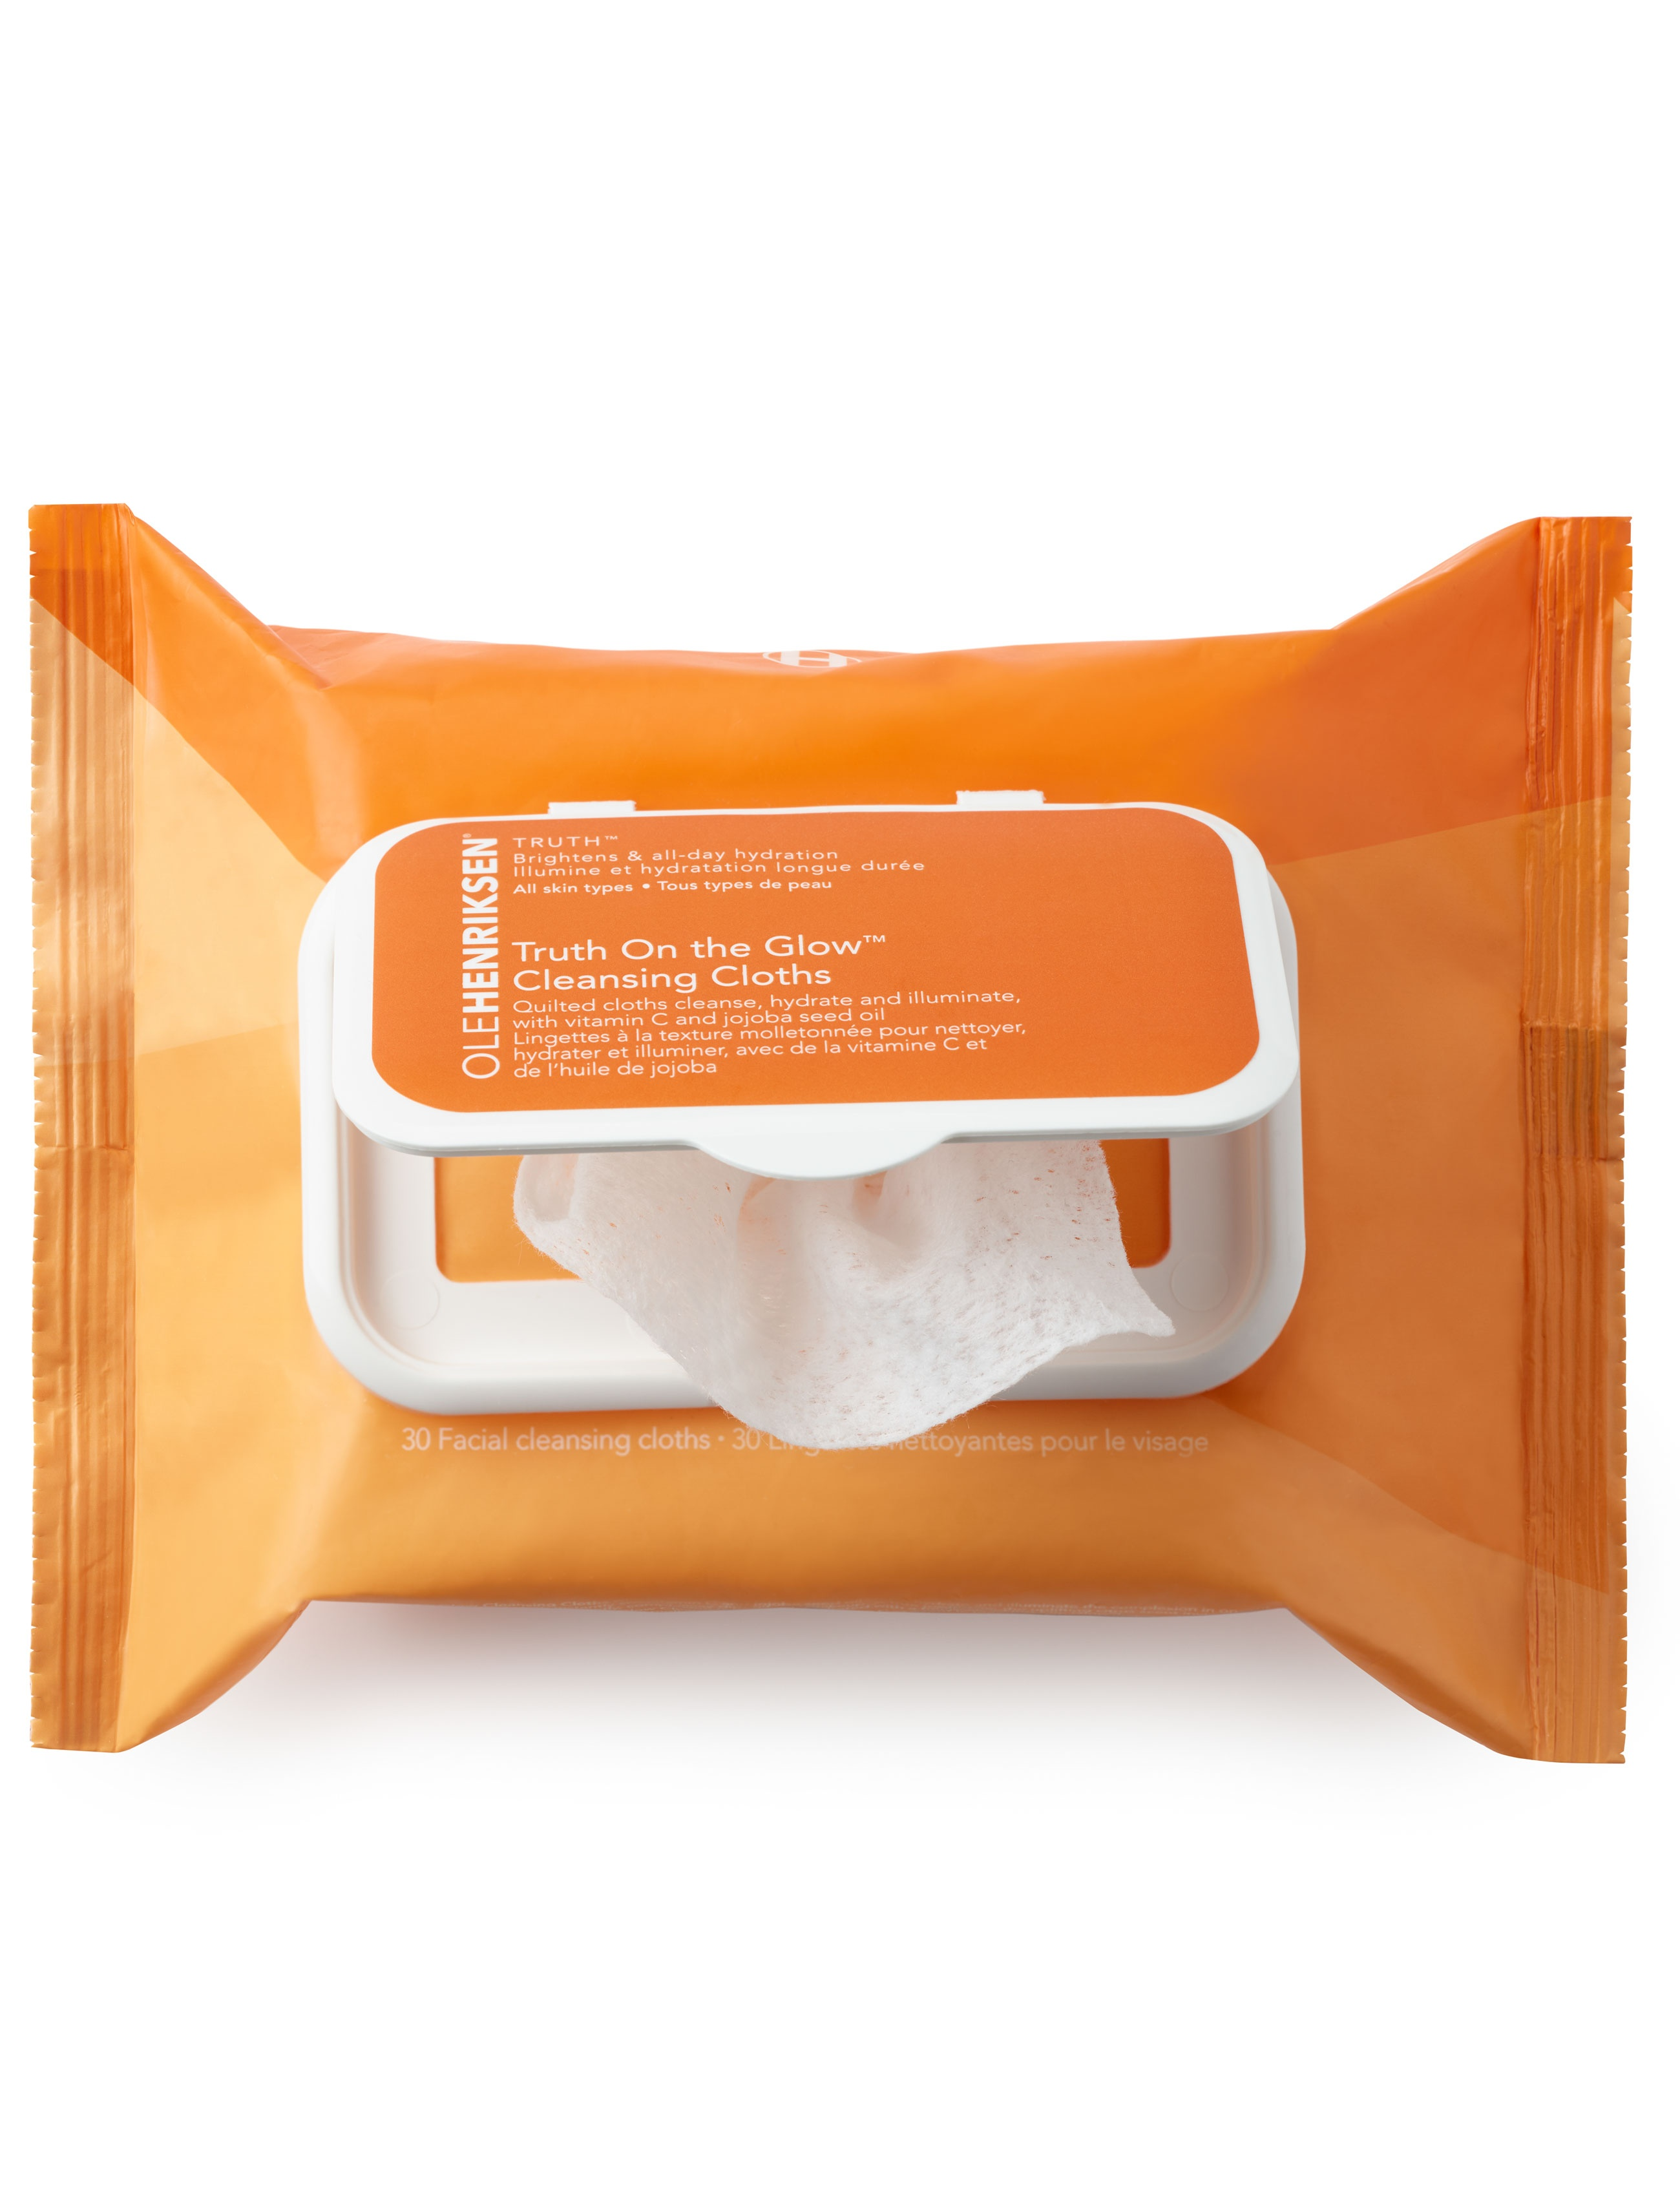 Ole Henriksen Truth Truth On The Glow Cleansing Cloths, 30 stk